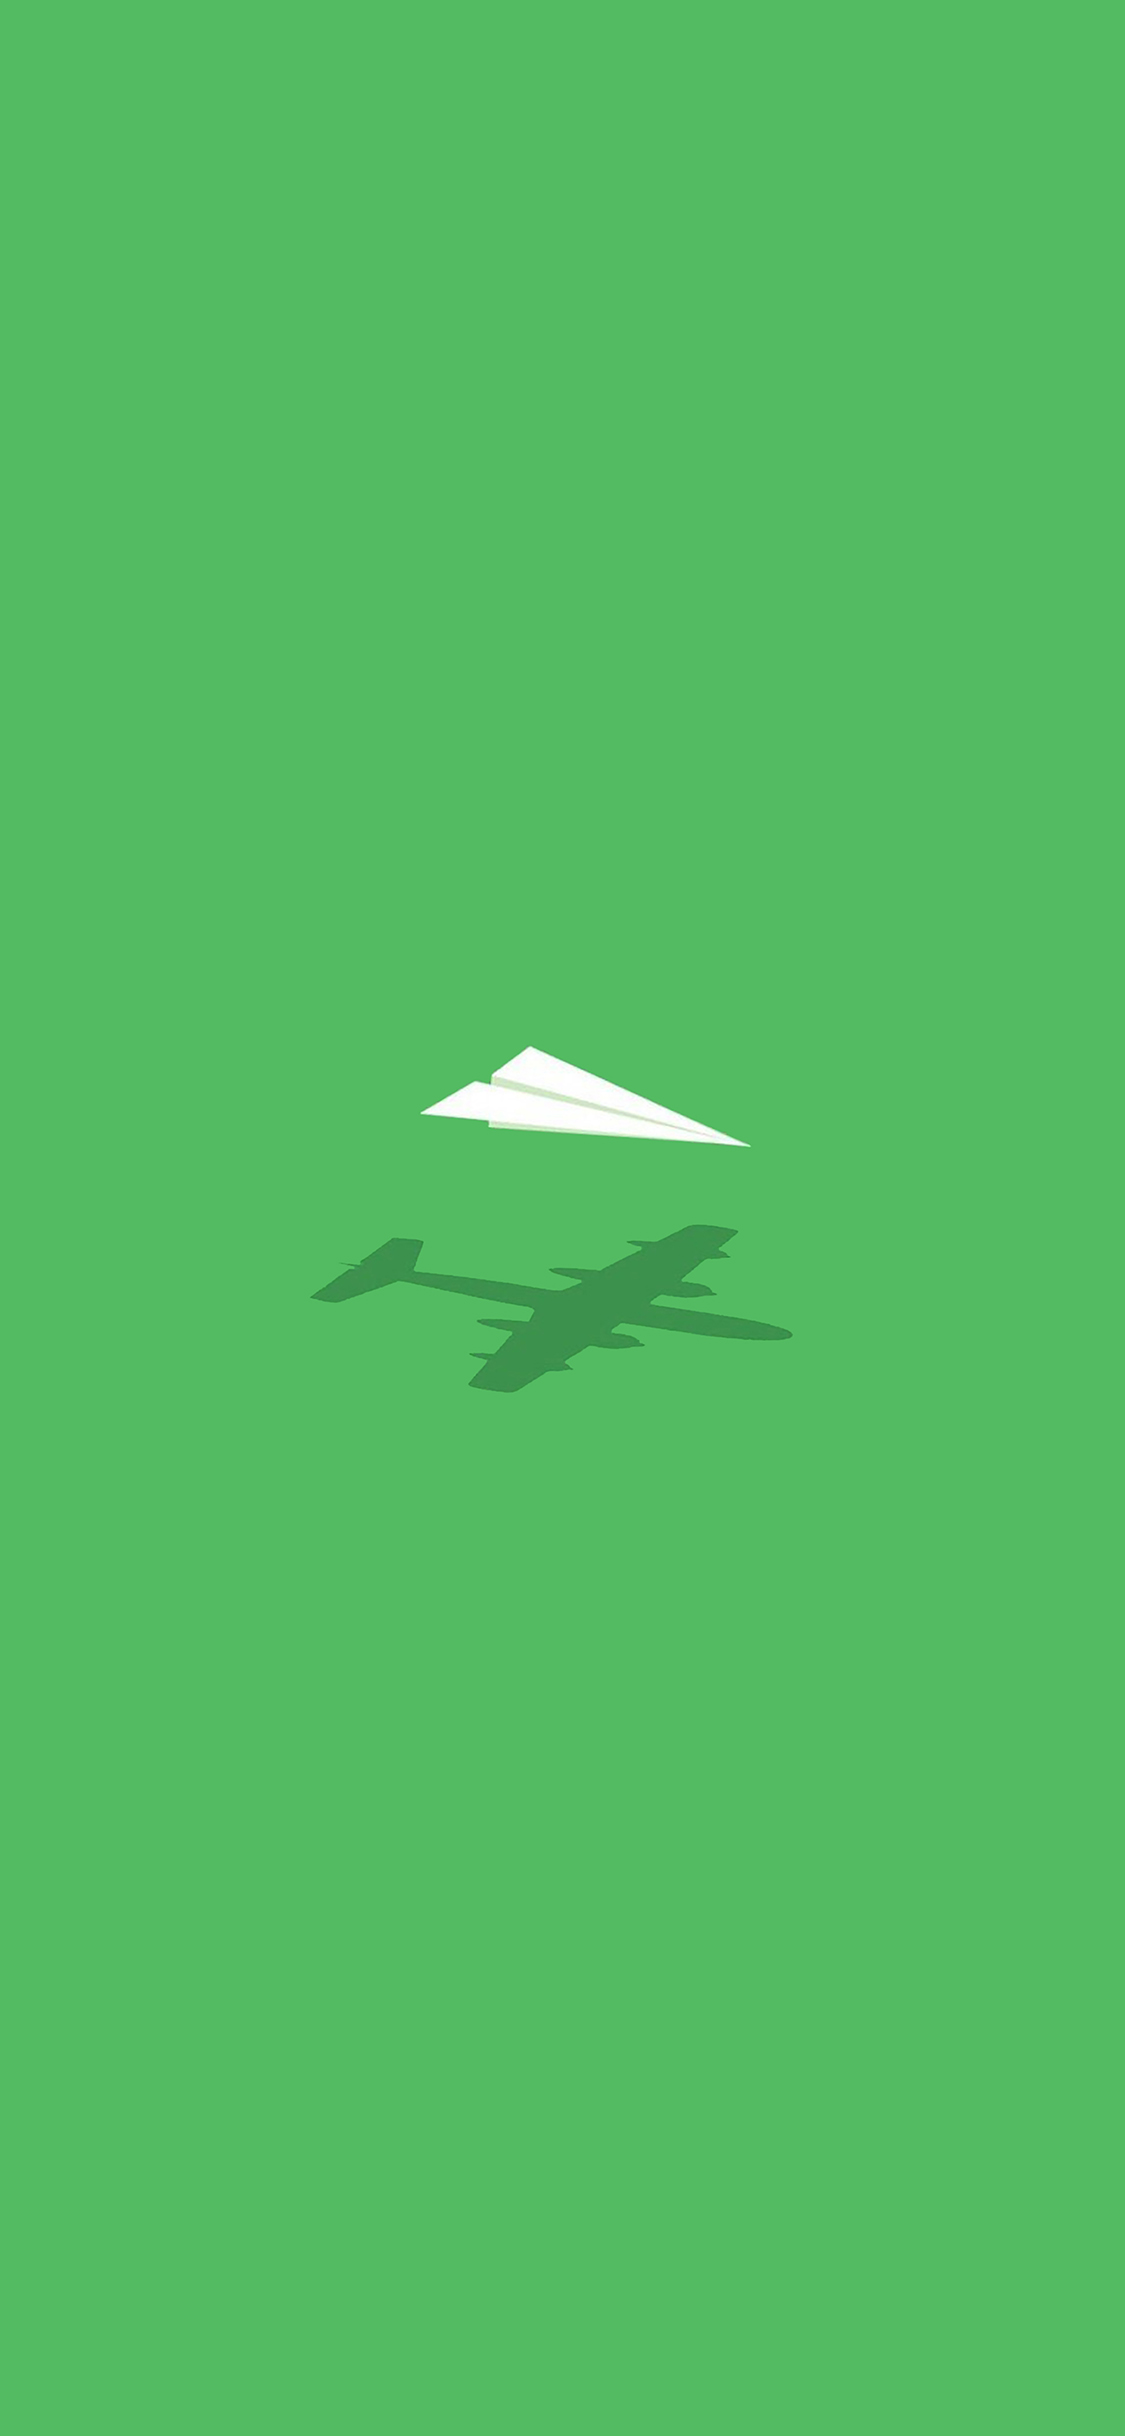 iPhoneXpapers.com-Apple-iPhone-wallpaper-af21-rc-plane-minimal-art-illust-cute